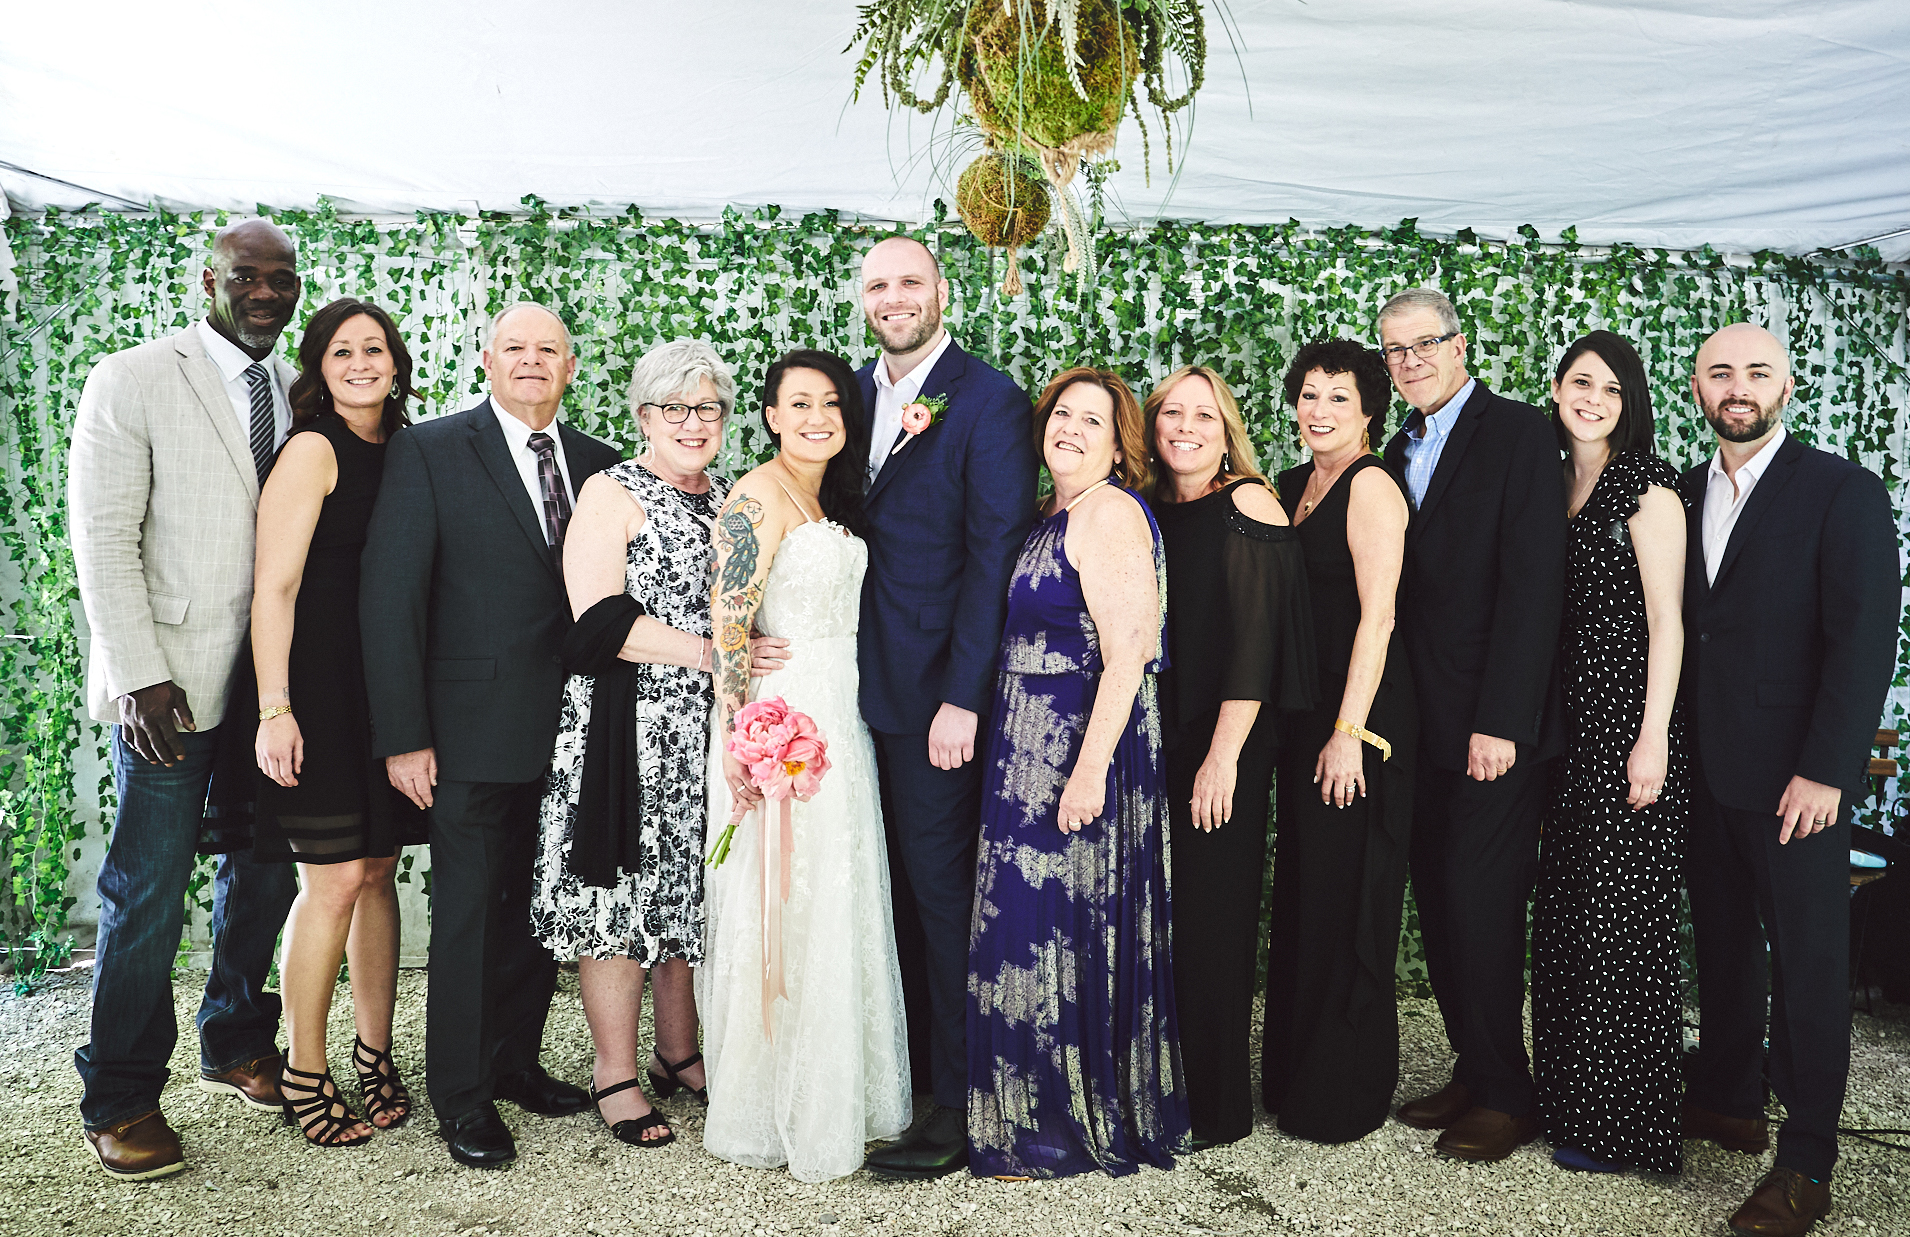 190518_SpringThreesBreweryWedding_By_BriJohnsonWeddings_0069.jpg